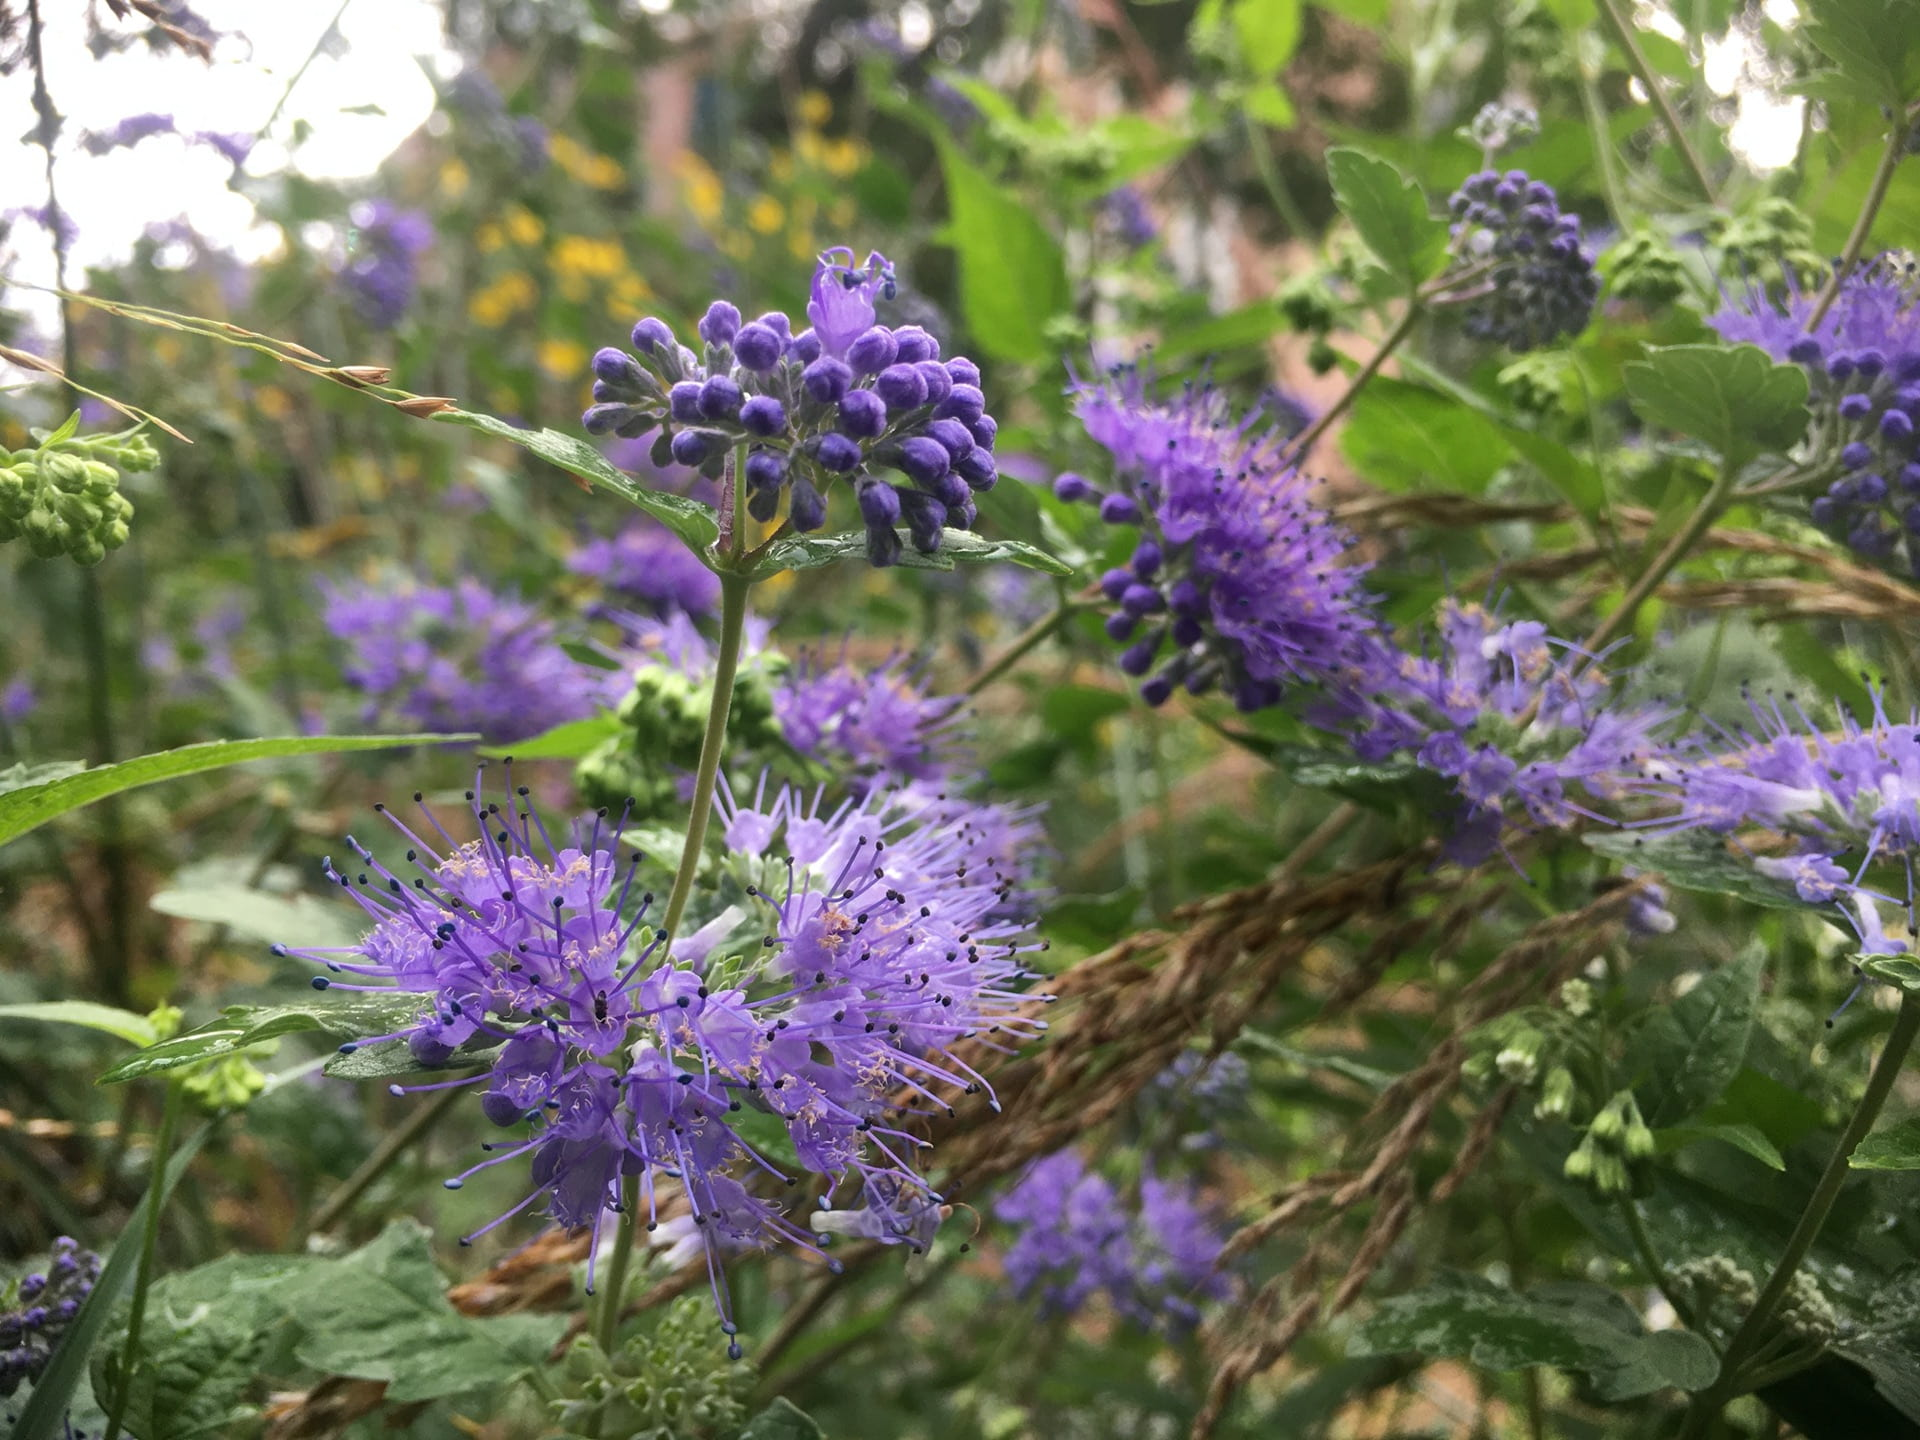 The tiered flowers of Caryopteris x clandonensis viewed up close.